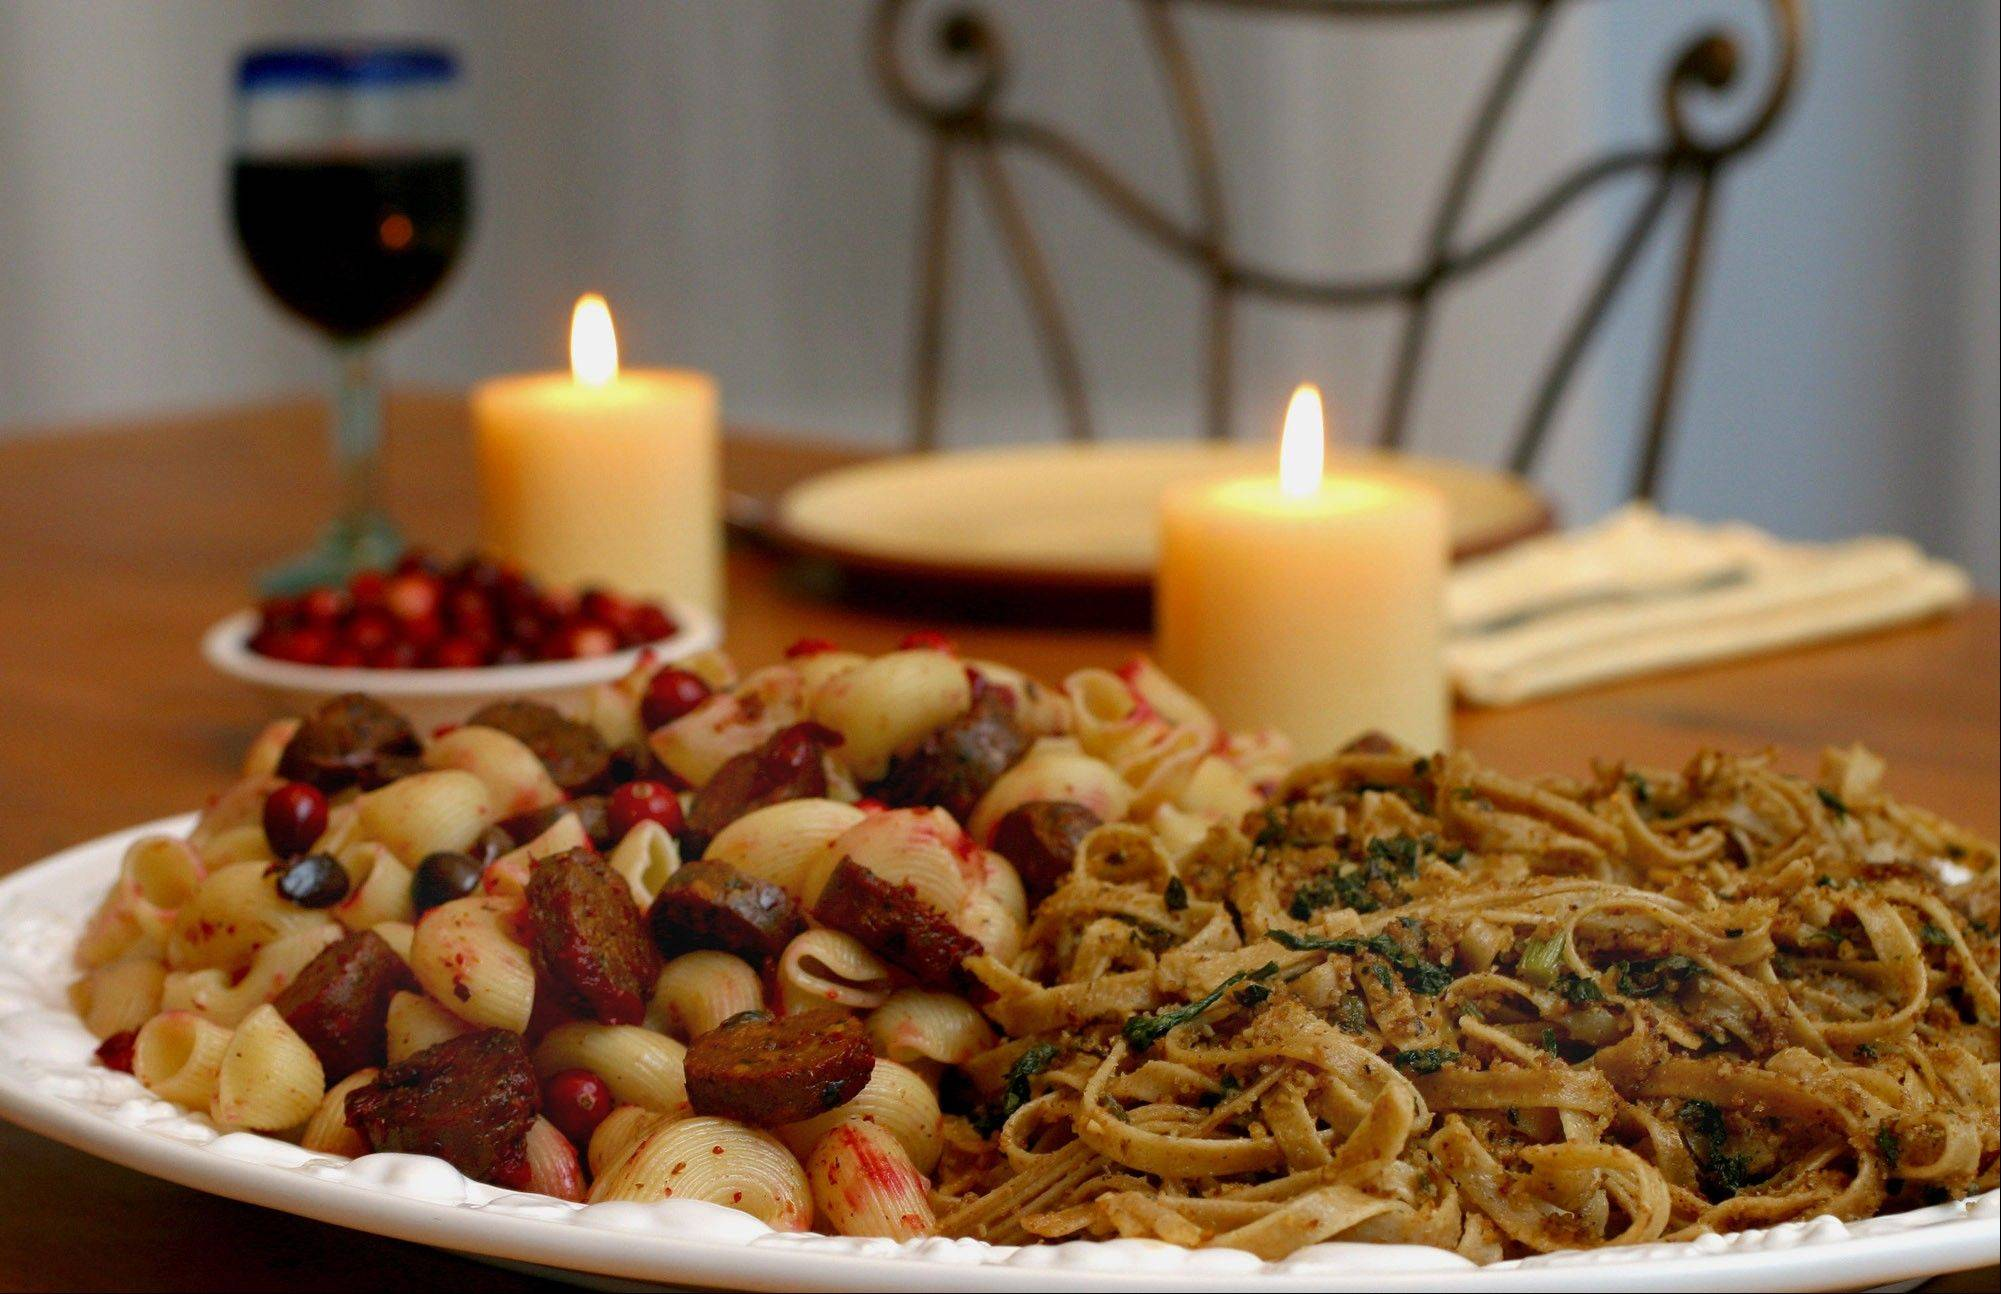 This Nov. 1, 2003, file photo, shows ziti with cranberries and Italian soy sausage, left, and Good Friday pasta, in Concord, N.H. In homes across the country on Thanksgiving Day, tables will be set to accommodate everyone from vegans and vegetarians to those trying to eat like a caveman. Increasingly complicated Thanksgiving feasts reflect the growing ranks of Americans who are paying closer attention to the food they put in their bodies.